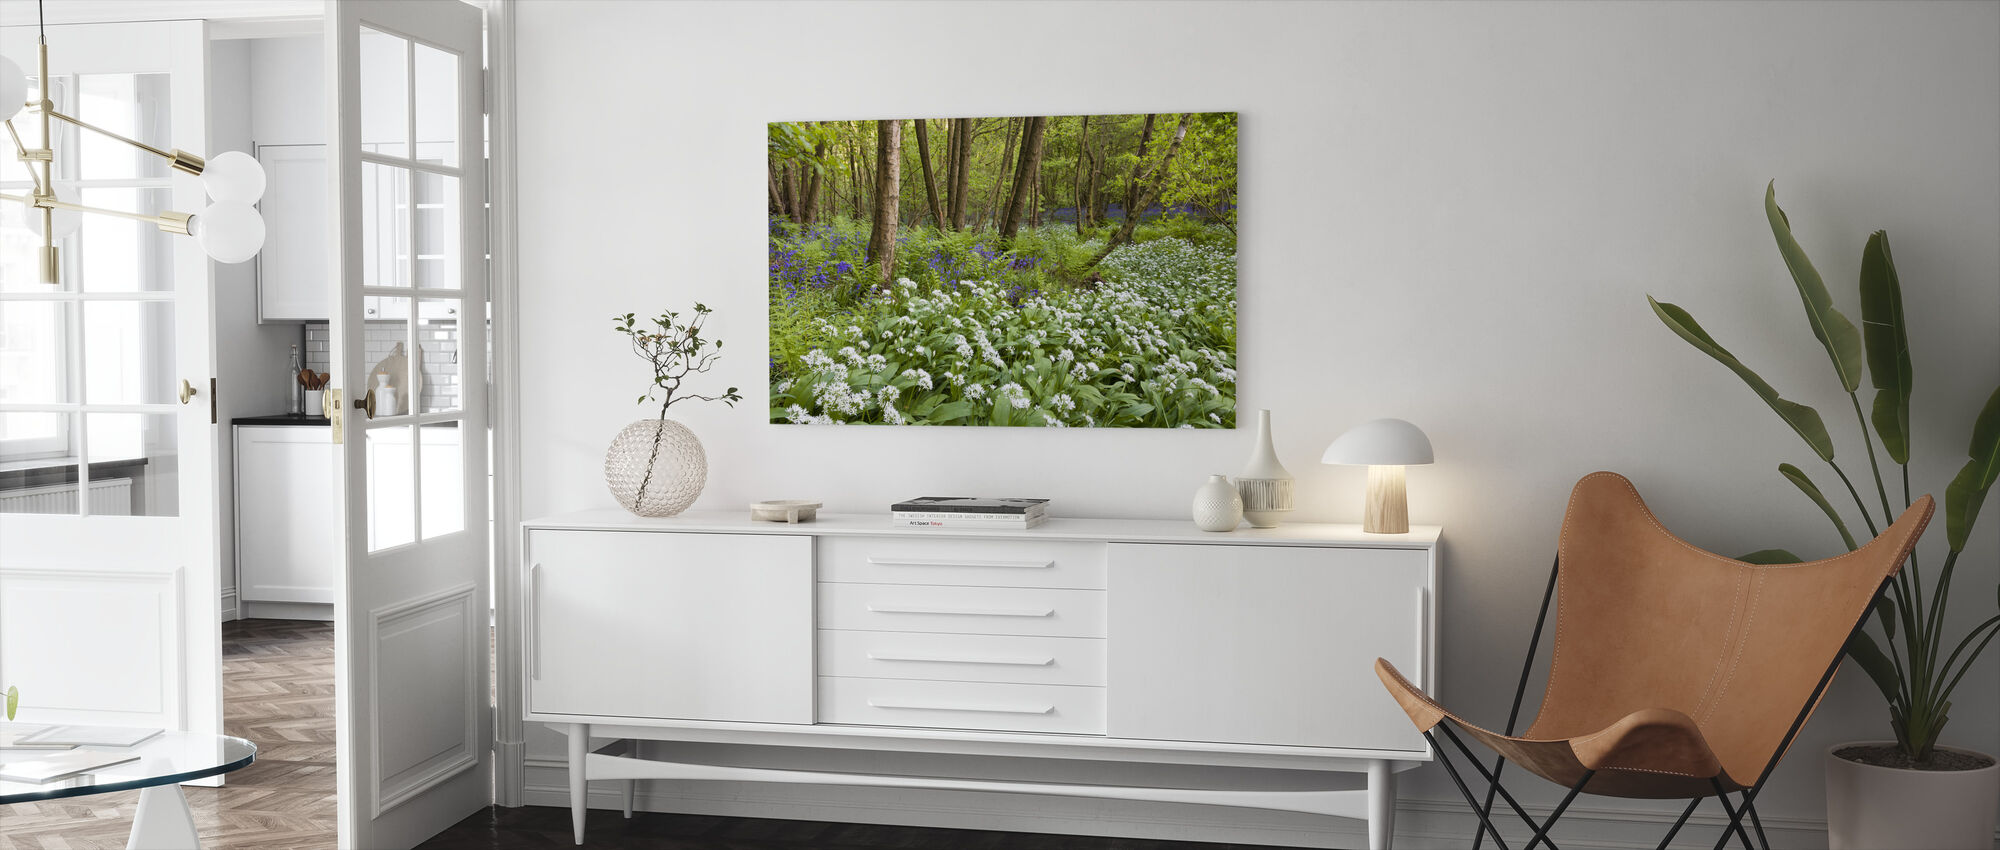 Bear Garlic and Bluebells - Canvas print - Living Room